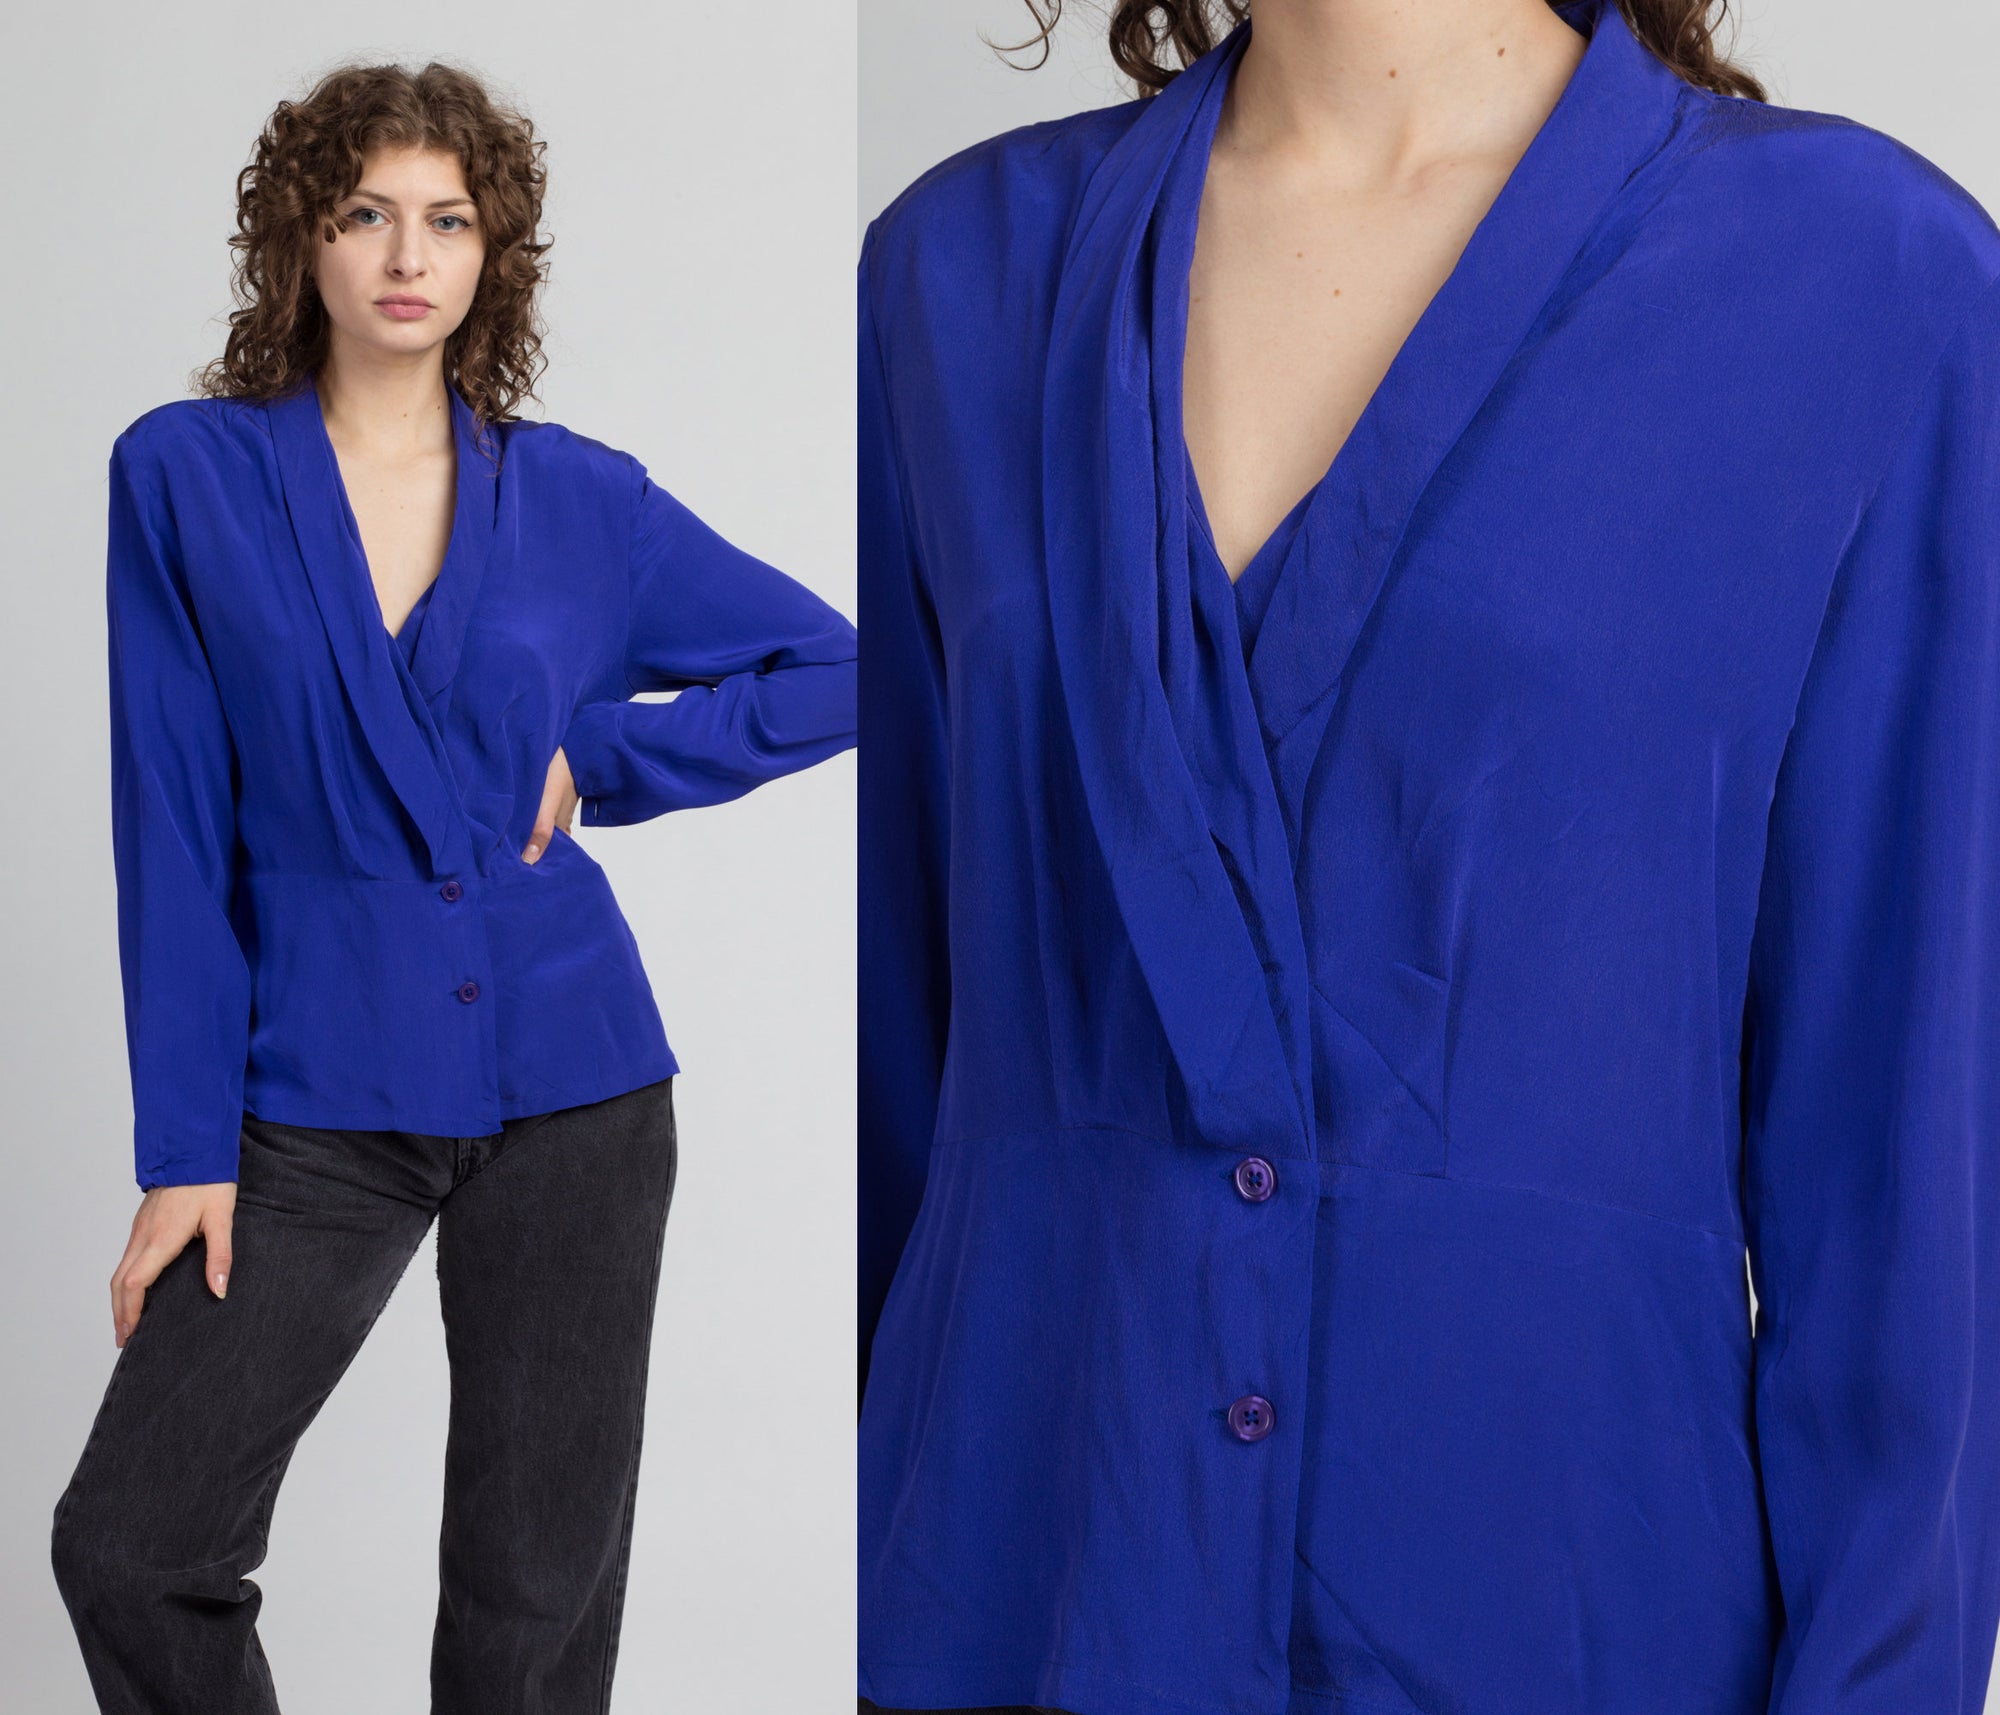 Vintage Nordstrom Royal Blue Silk Blouse - Medium